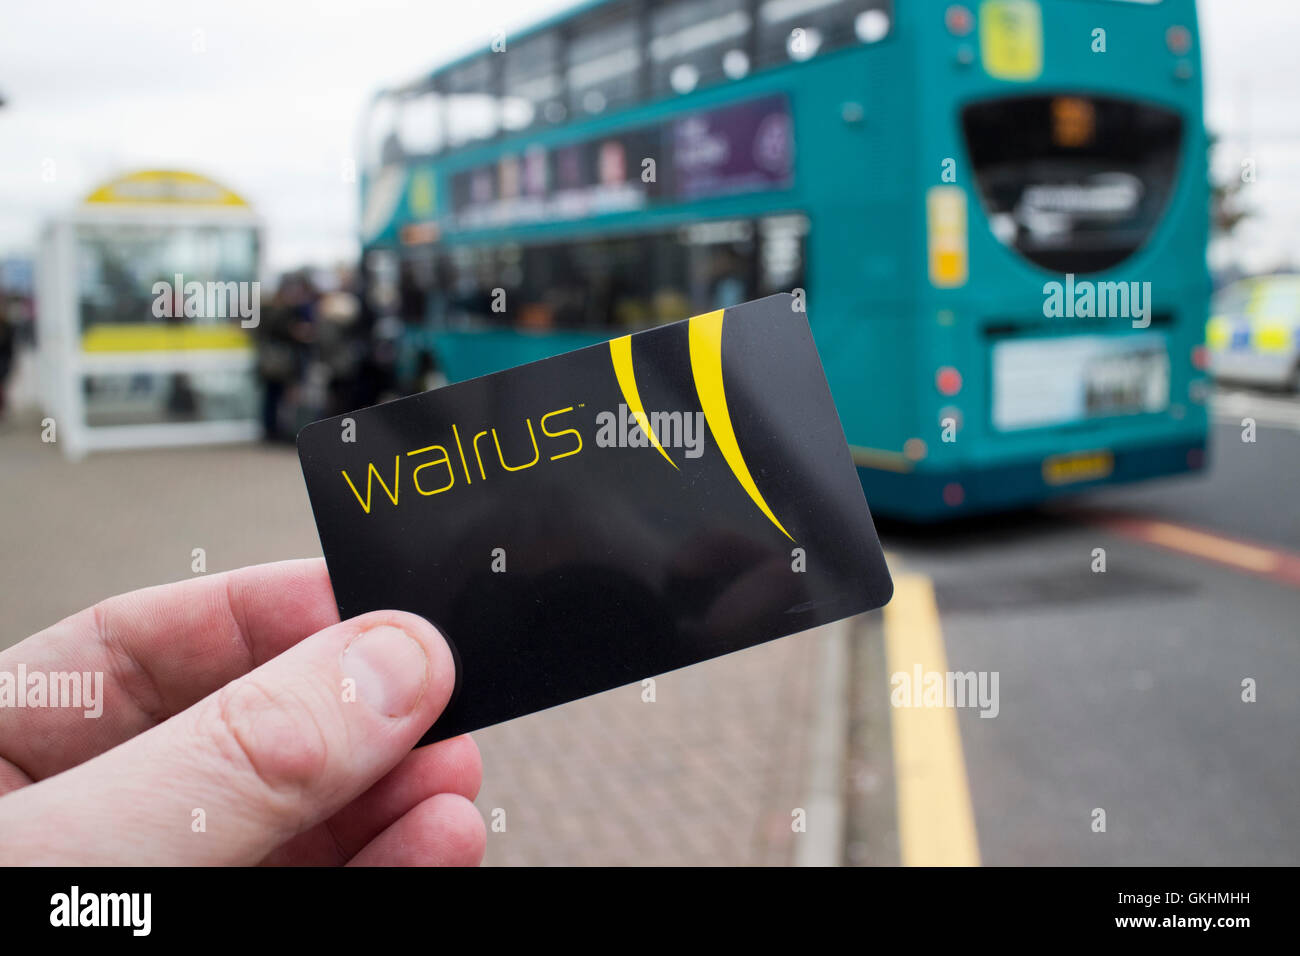 Carte smartcard morse merseytravel voyage à l'arrêt de bus Photo Stock